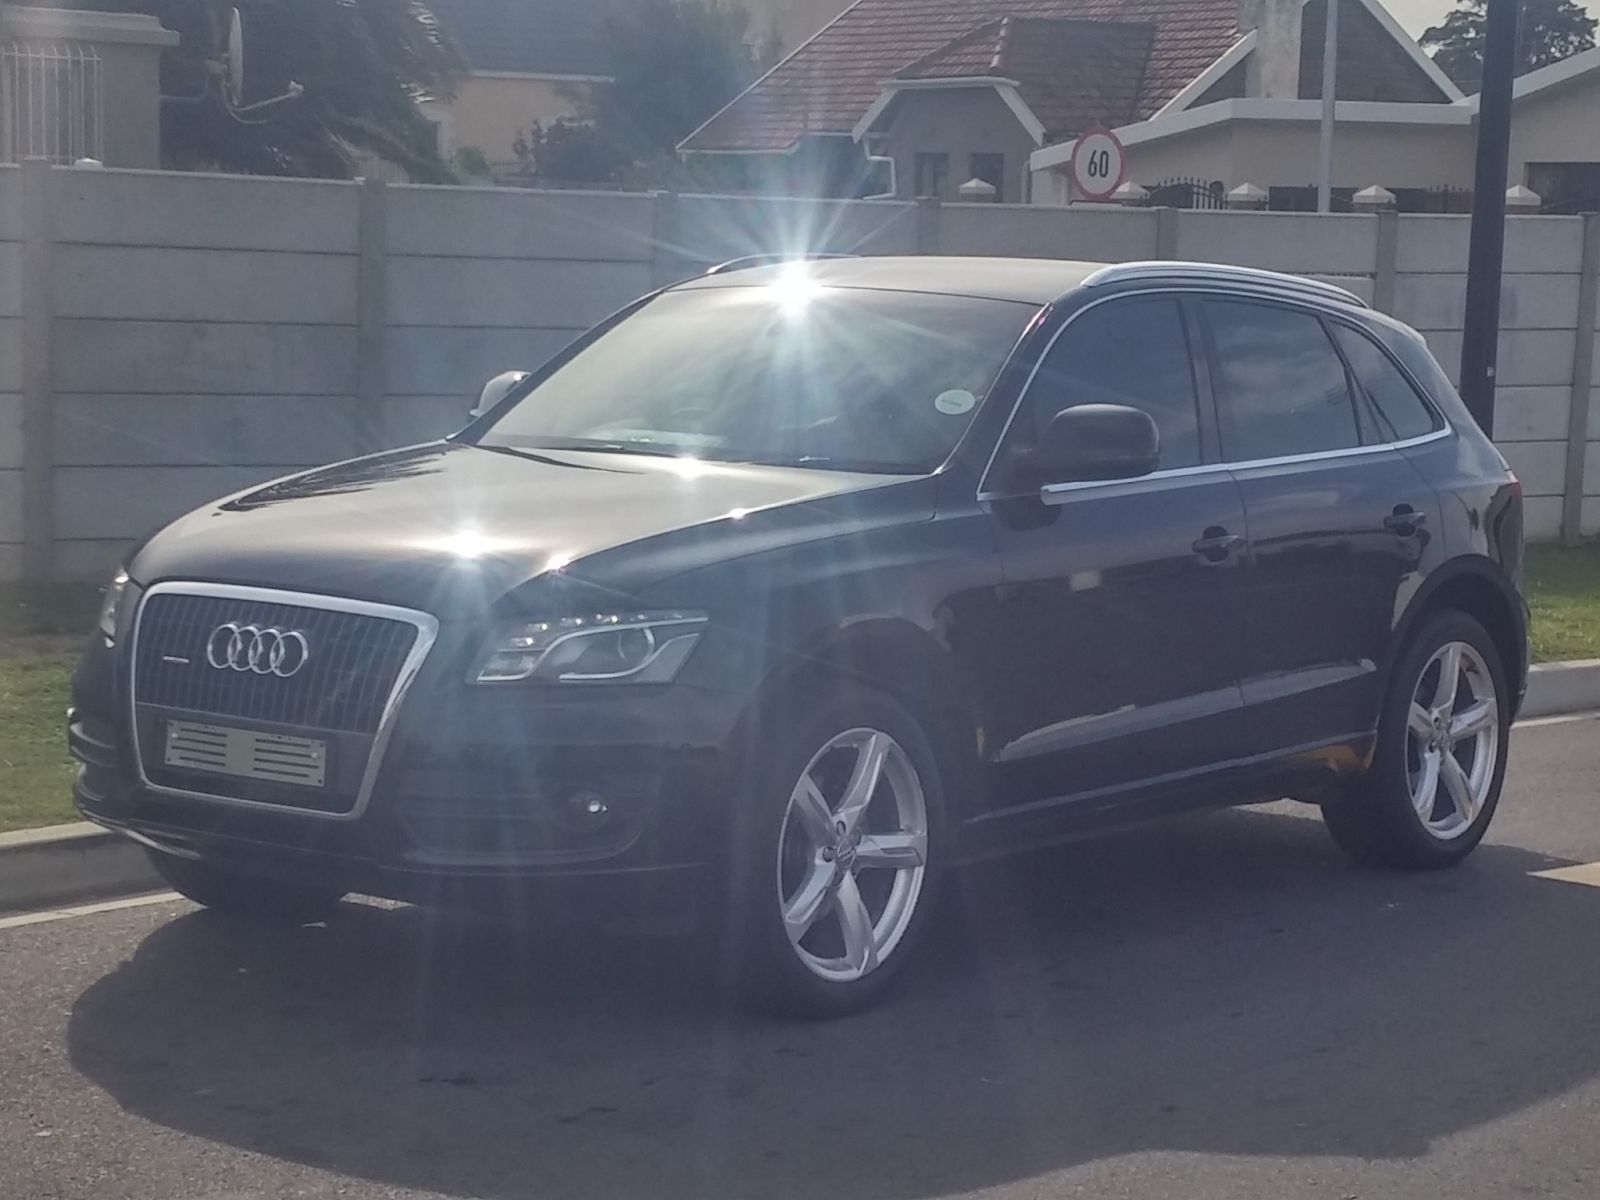 sale cars for motors co audi uk used colour grey